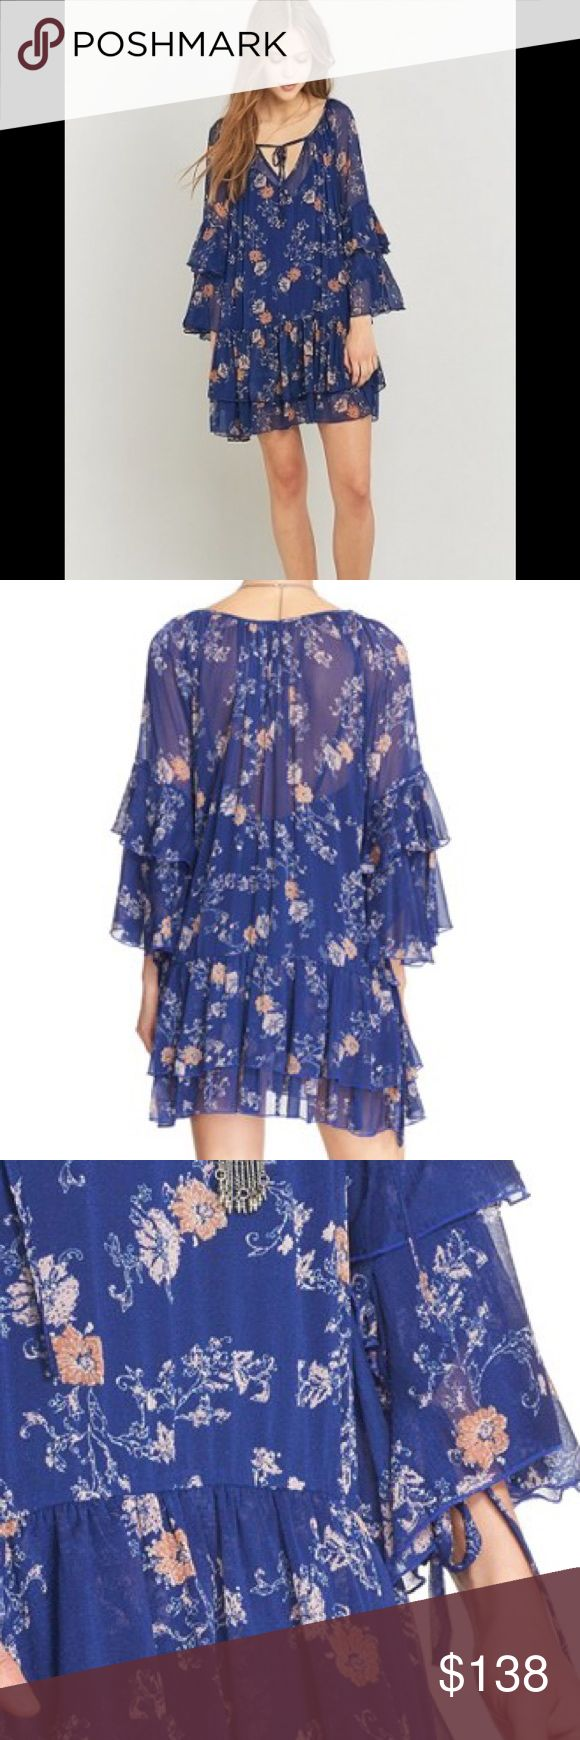 Crib for sale kijiji toronto - Free People Ruffle Sleeve Baby Doll Printed Dress Free People Printed Baby Doll Tunic Dress